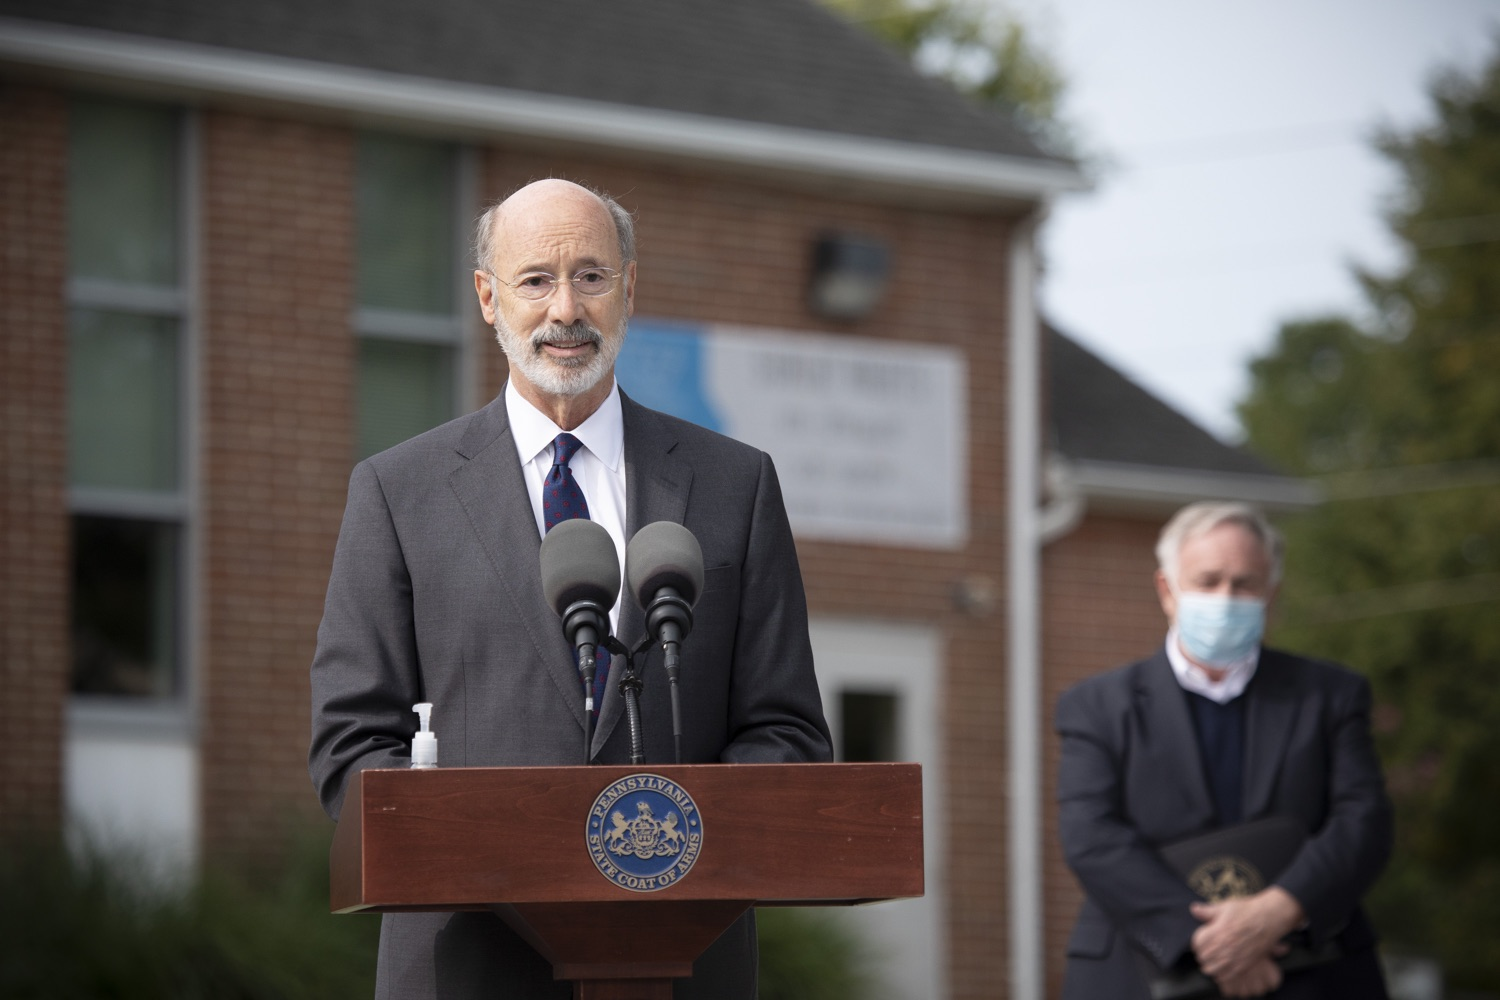 "<a href=""https://filesource.wostreaming.net/commonwealthofpa/photo/18259_gov_electionReform_dz_001.jpg"" target=""_blank"">⇣ Download Photo<br></a>Pennsylvania Governor Tom Wolf speaking to the press.  With only seven weeks left before the Nov. 3 election, Governor Tom Wolf is urging immediate legislative action to ensure voters receive their mail-in ballots early and give counties more time to process and count ballots before election day. The governor also reassured Pennsylvanians that in-person voting is safe, and all eligible votes will be counted. SEPTEMBER 14, 2020 - YORK, PA."